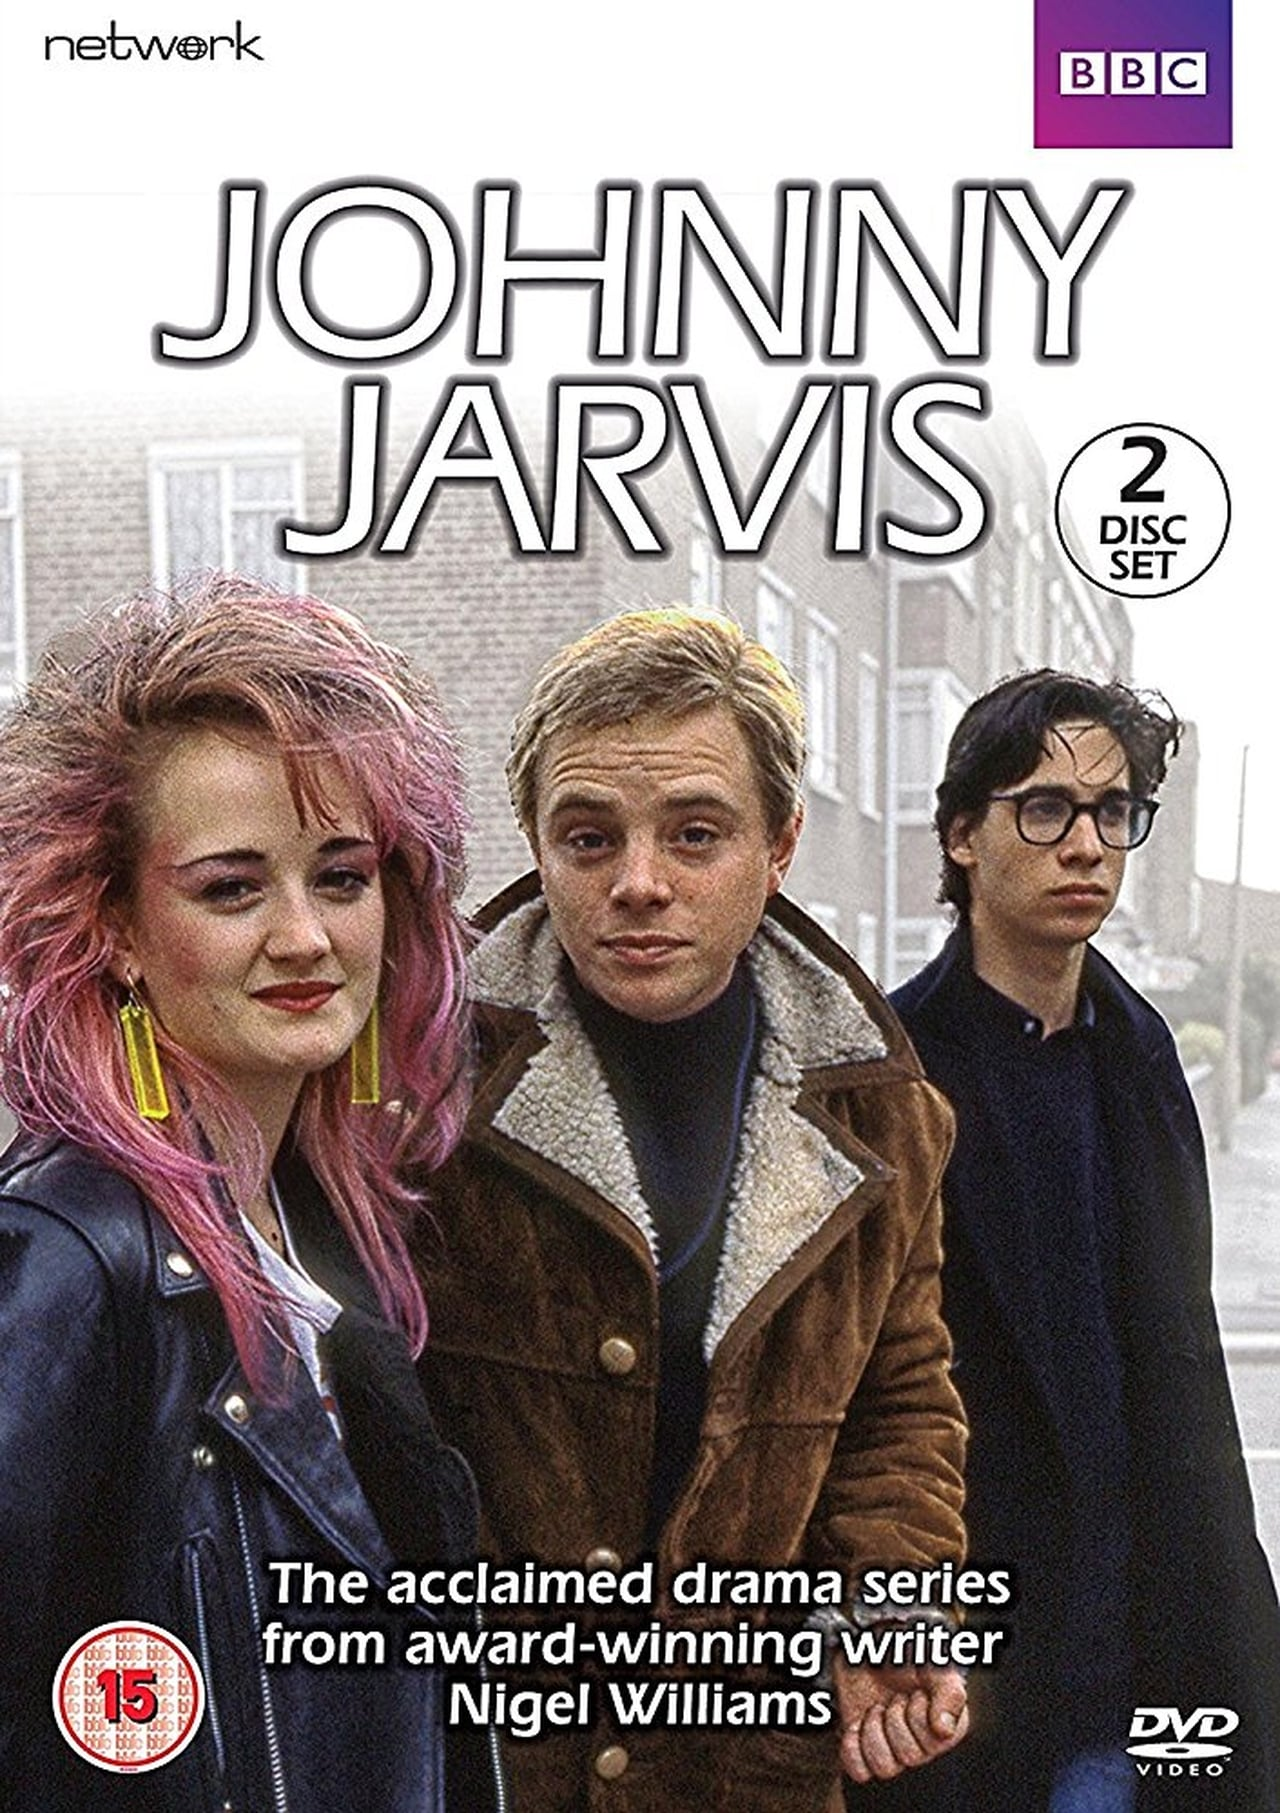 Johnny Jarvis